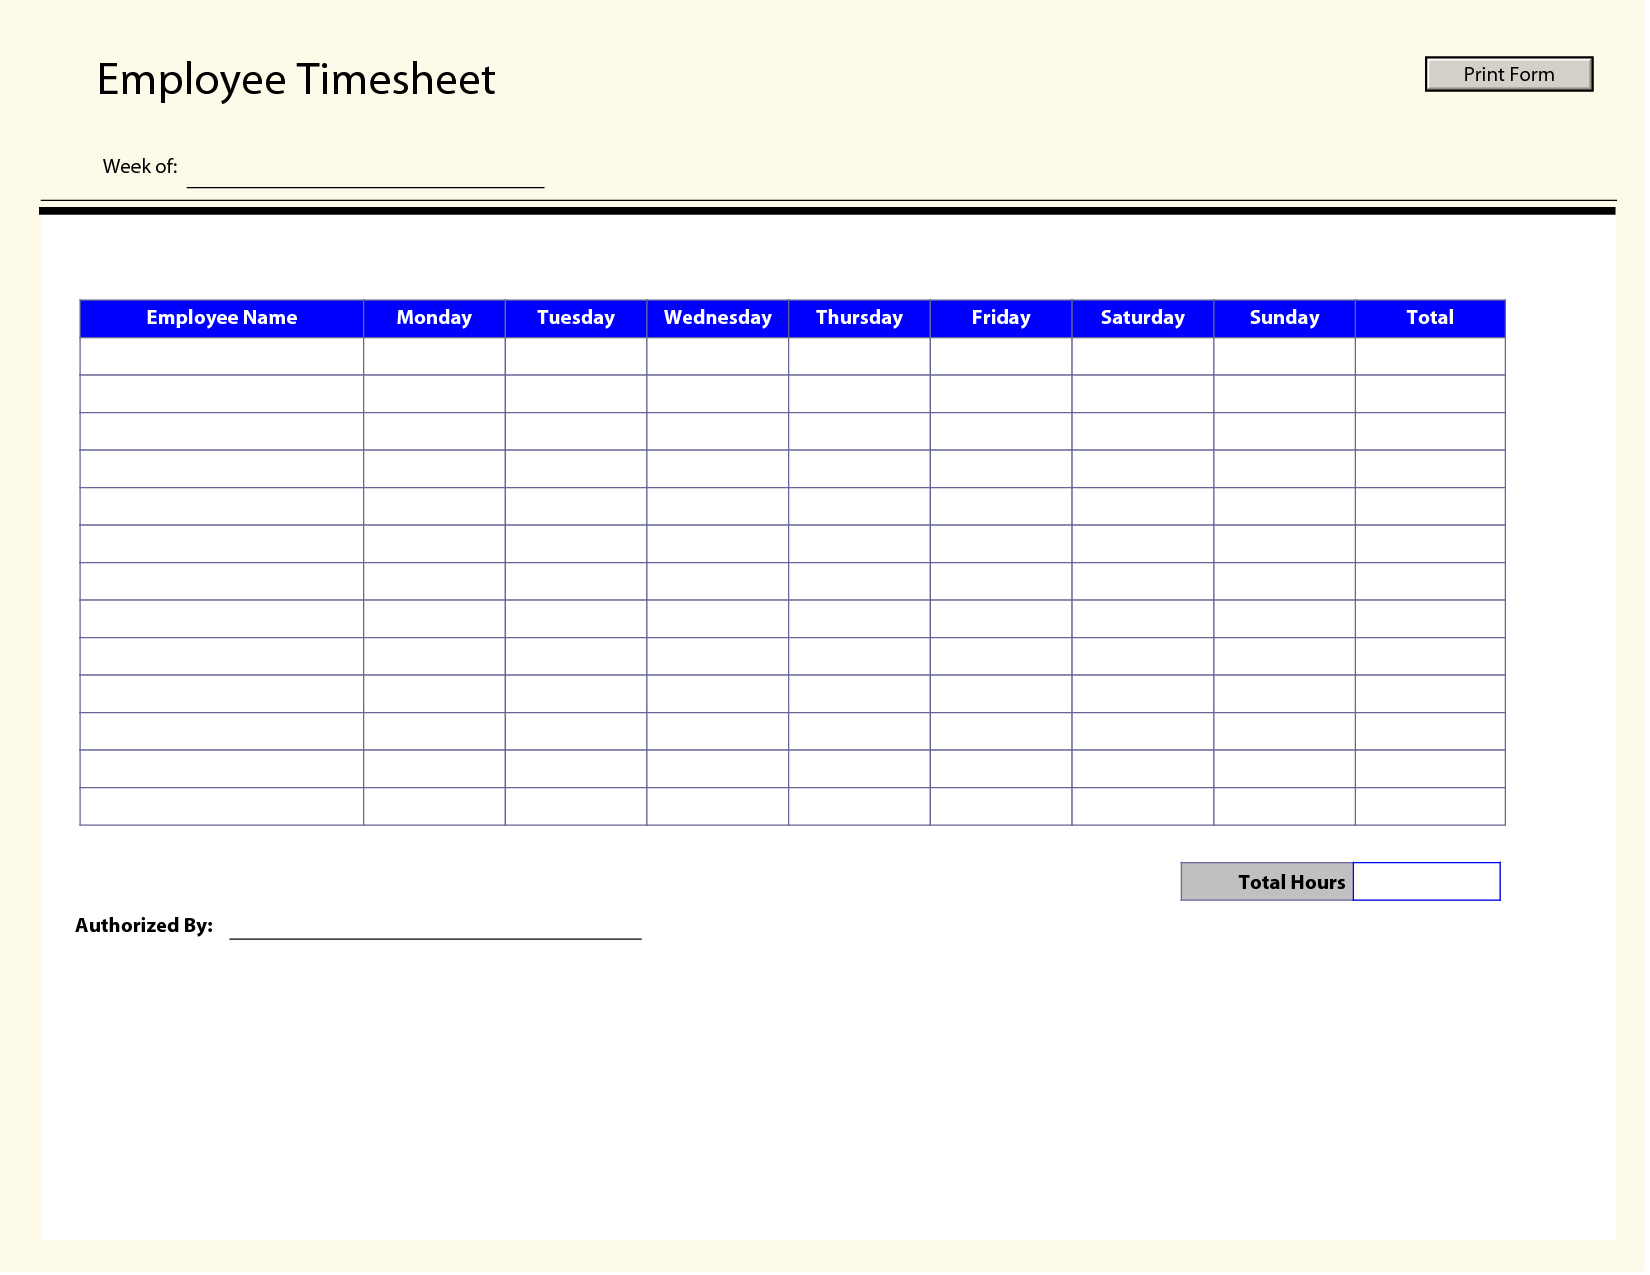 Blank Employee Timesheet Template | Management Templates | Pinterest - Free Printable Time Sheets Forms